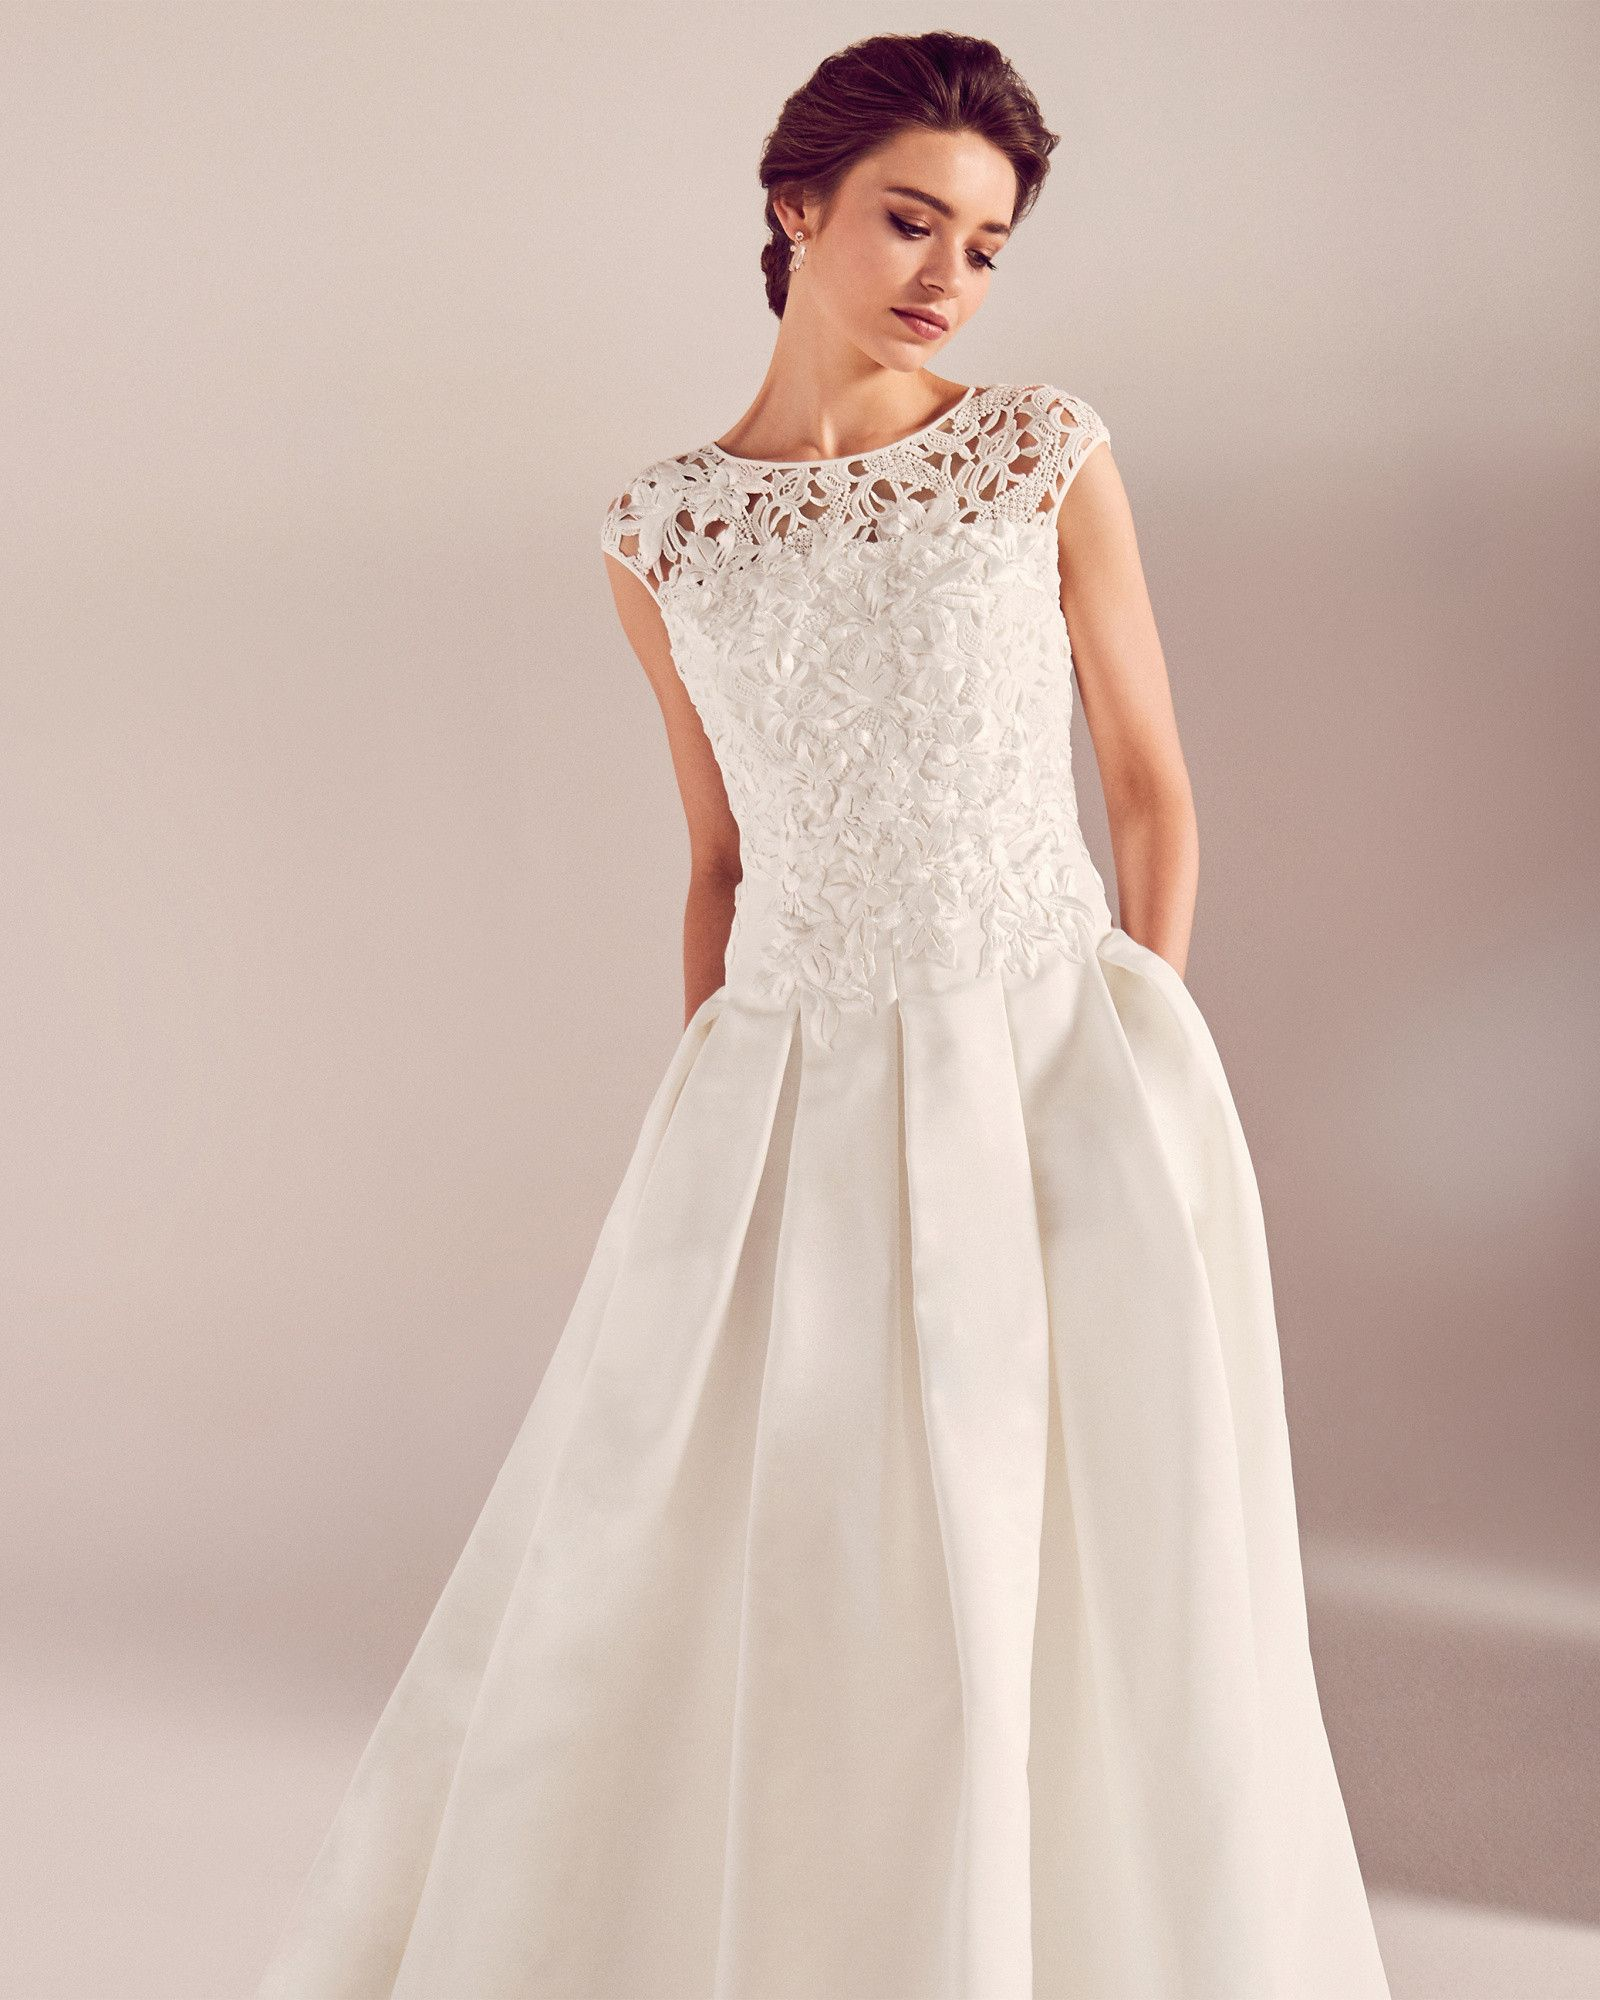 Walk Into Your New Life In This Elegant Floor Length Wedding Dress Crafted With A Roma Ted Baker Wedding Dress Bodice Wedding Dress Wedding Dress With Pockets